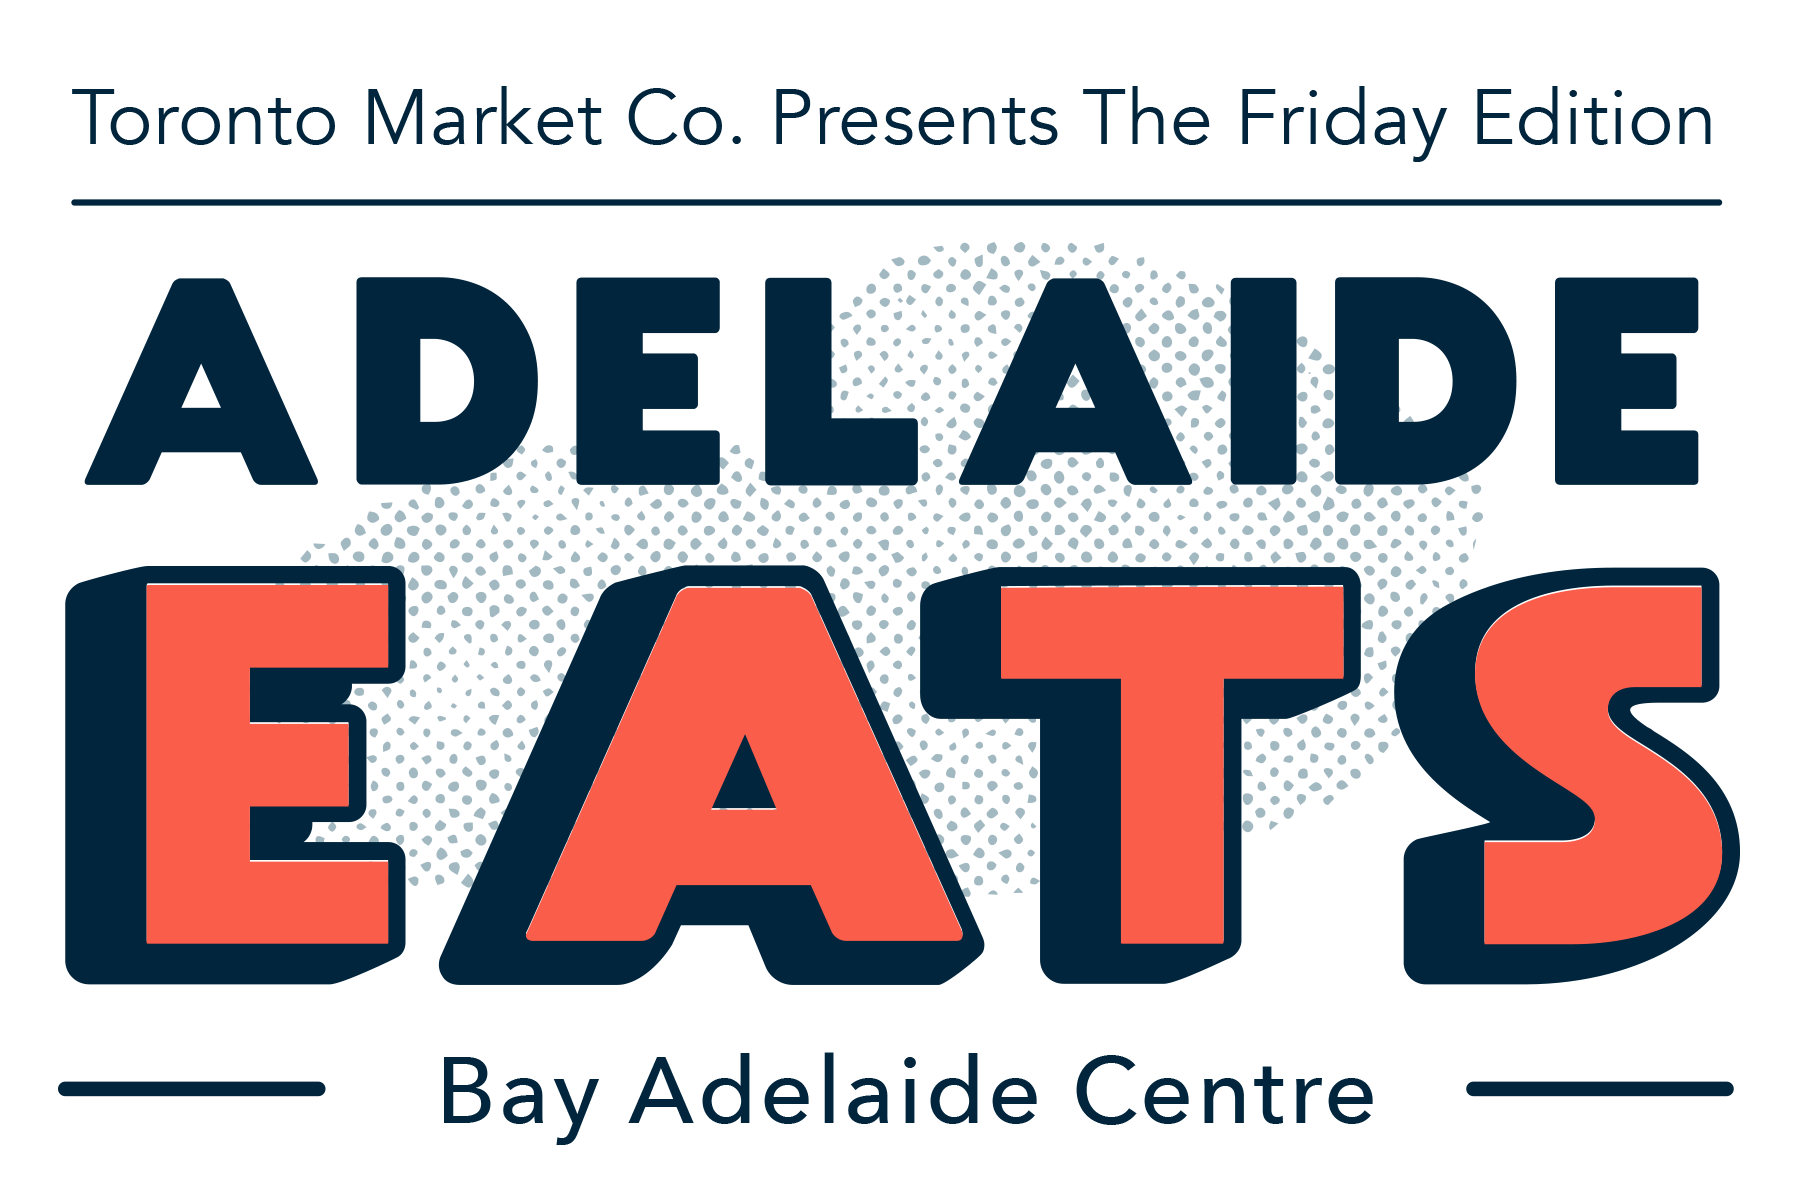 AdelaideEats2019_FridayEdition_Logo.png